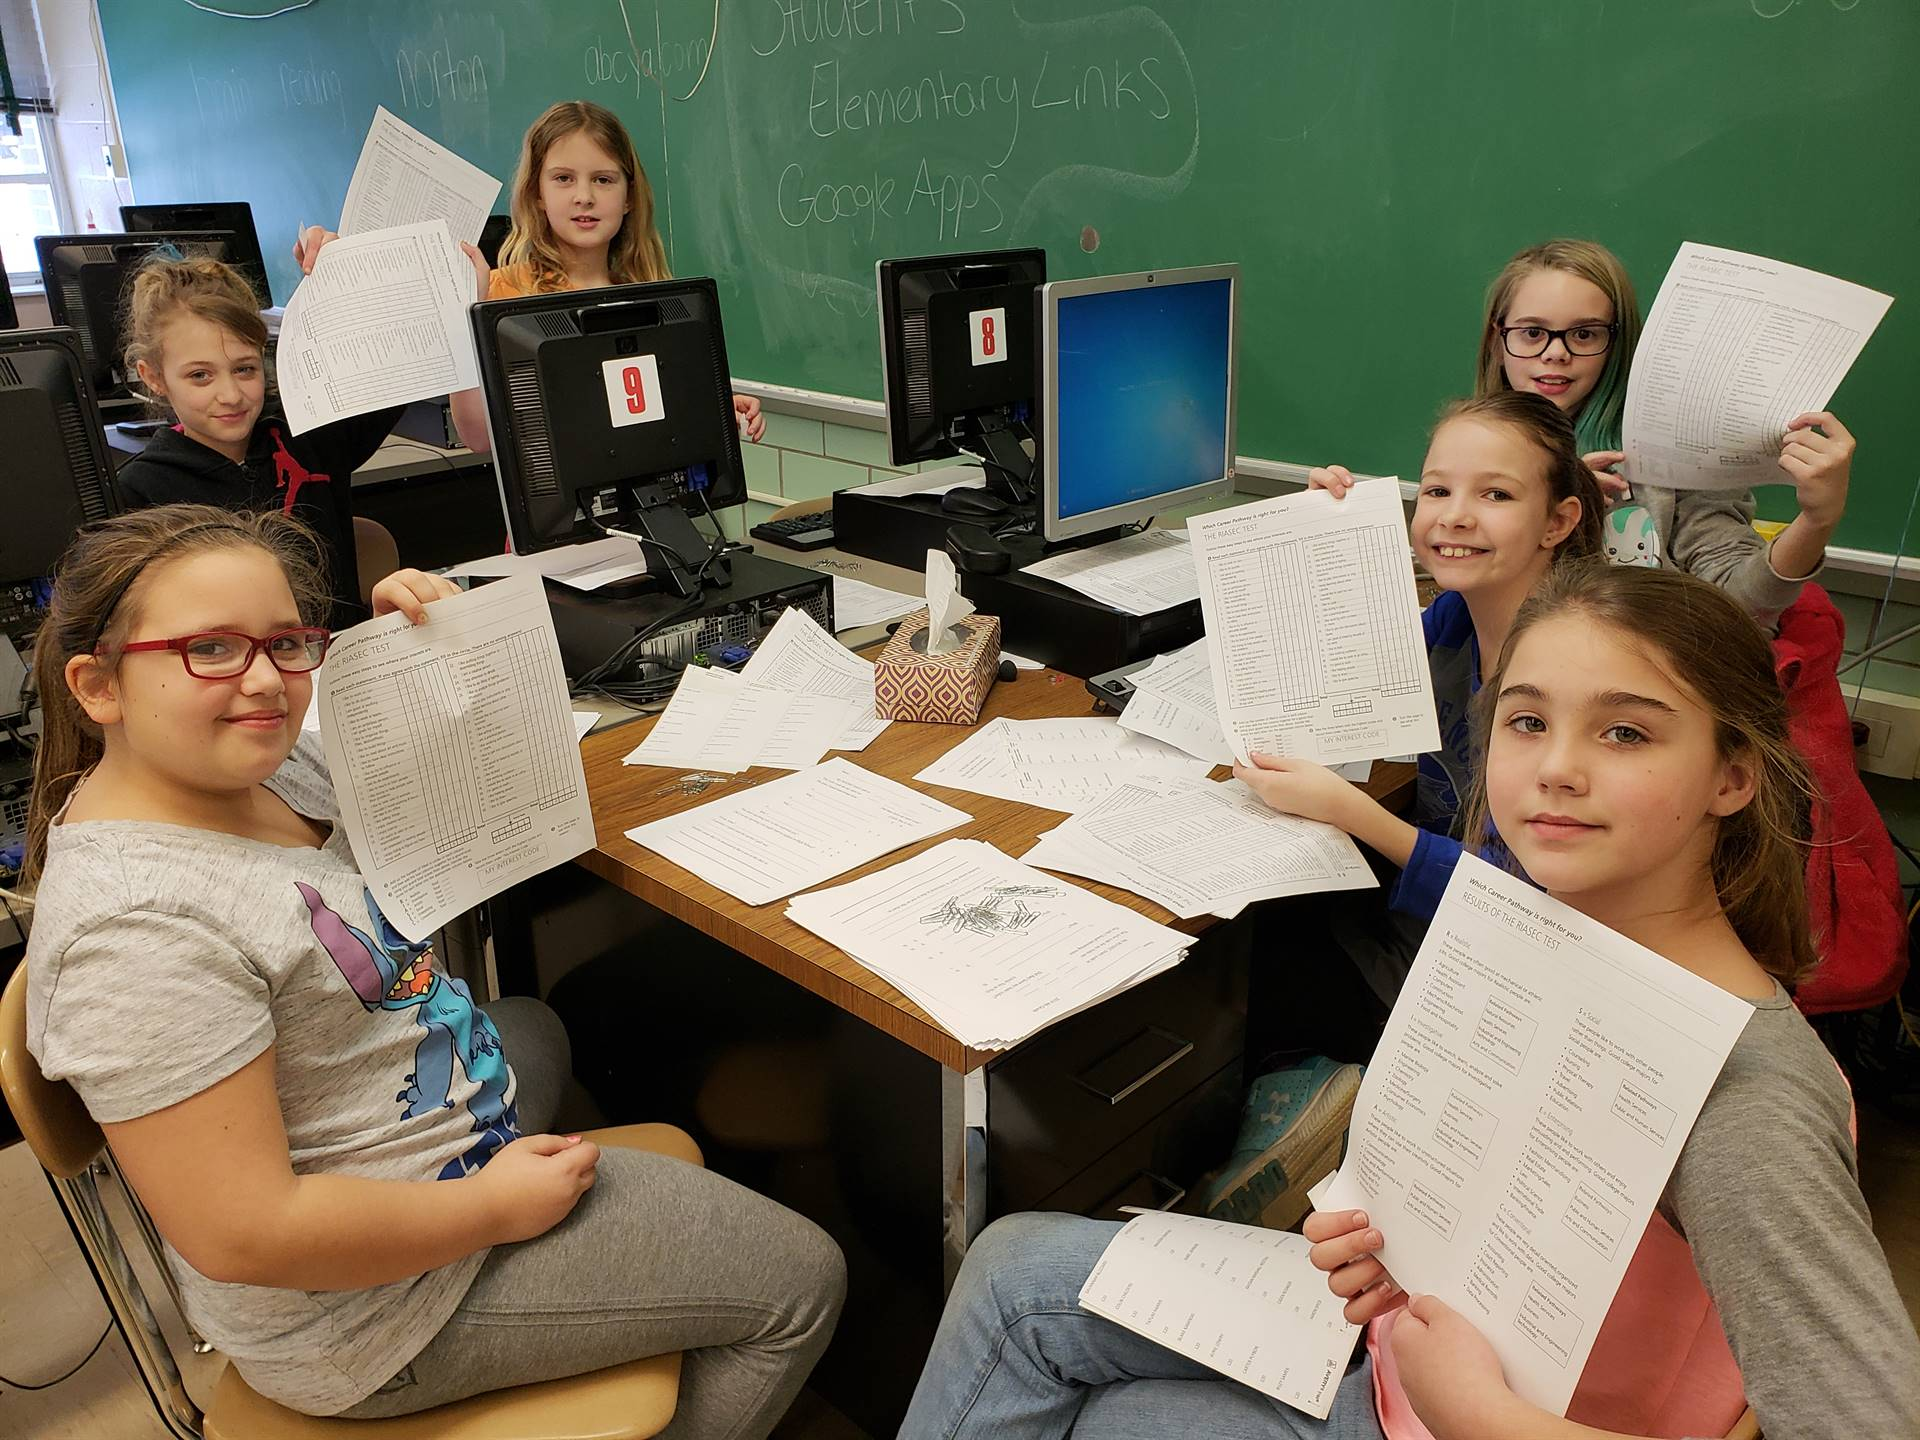 4th Grade Peer Support students helped get Interest Inventories ready.